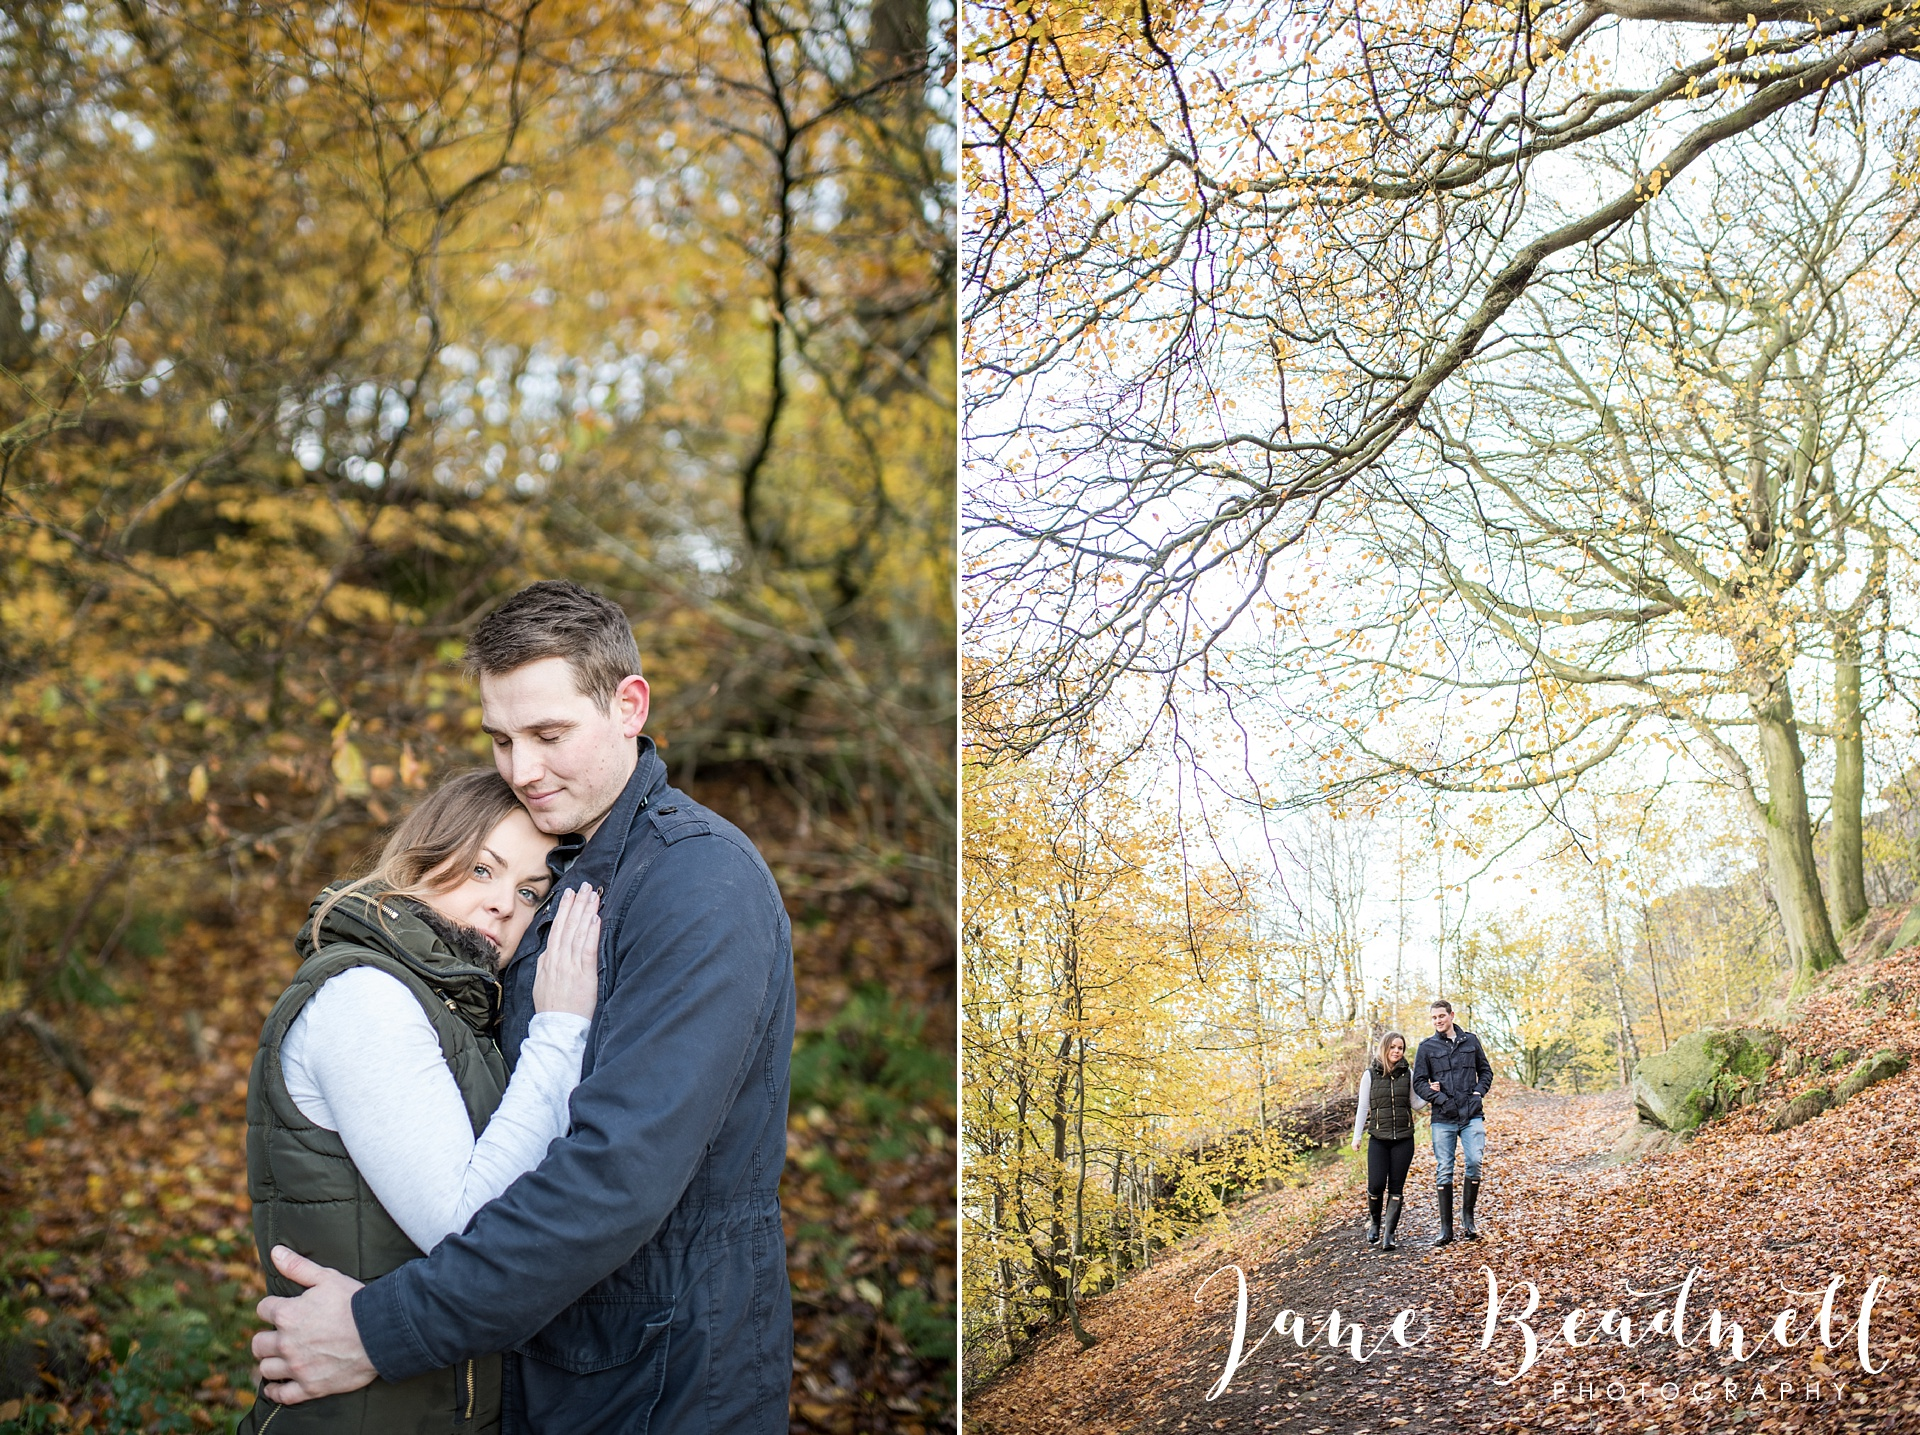 engagement-shoot-yorkshire-wedding-photographer-jane-beadnell-photography-uk-and-destination-wedding-photographer-engagement-shoot_0010